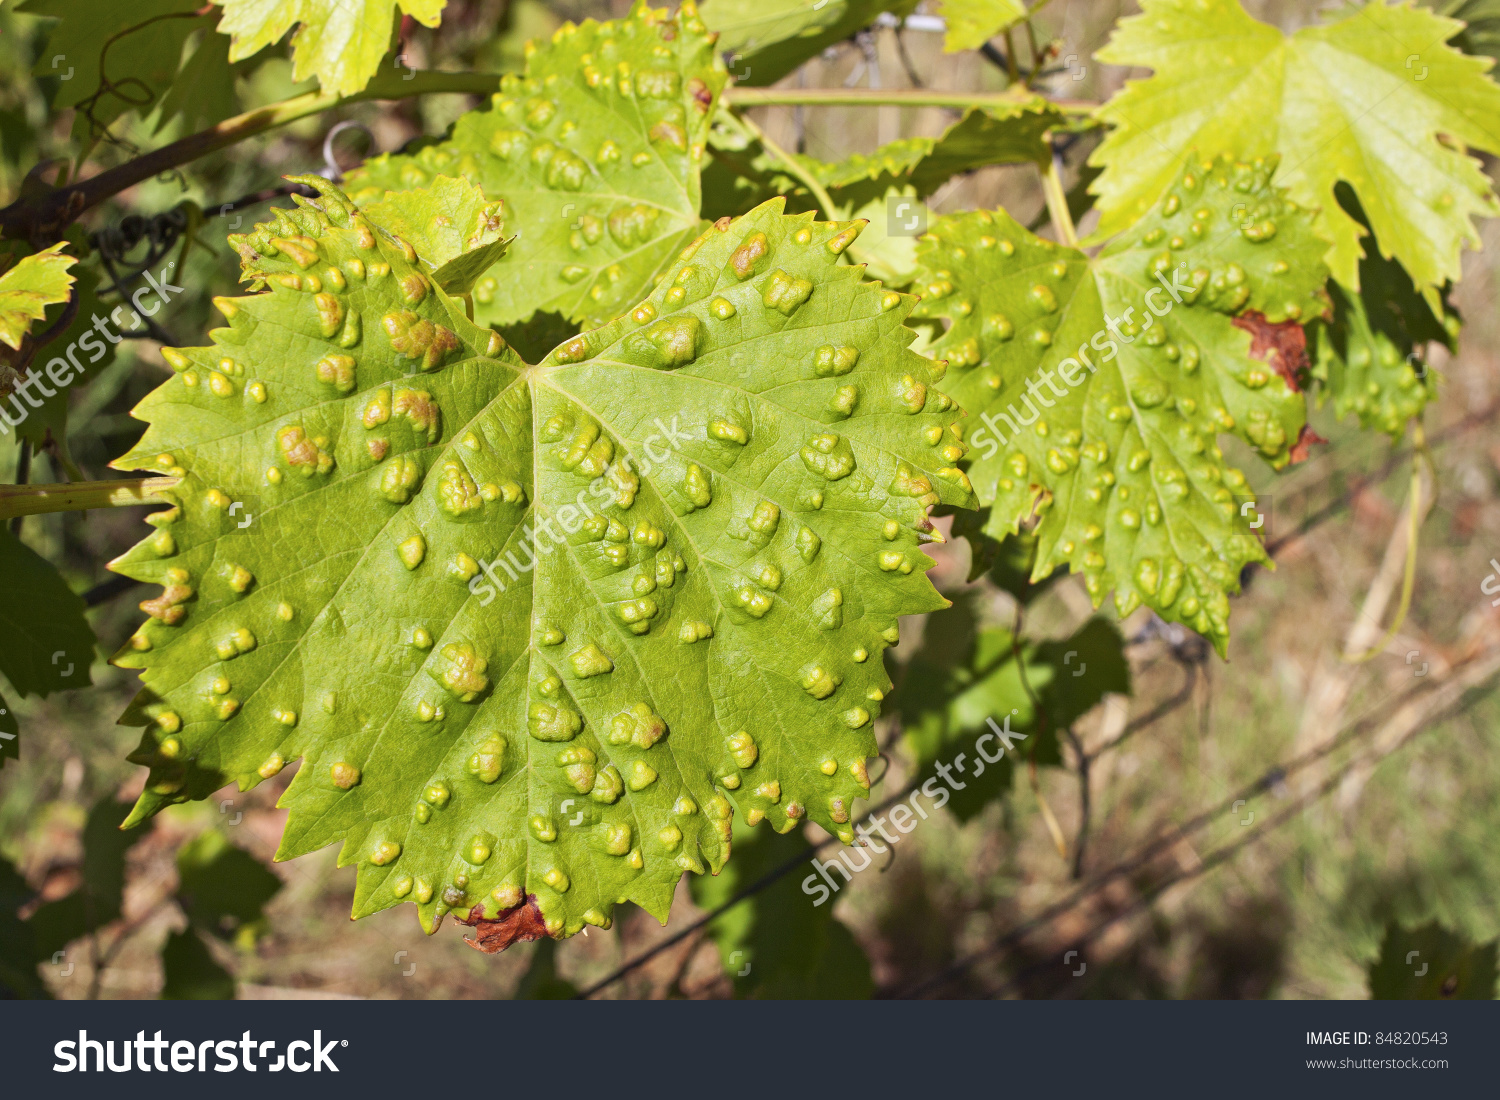 Sick Vine Leaf Green Foliage Background Stock Photo 84820543.